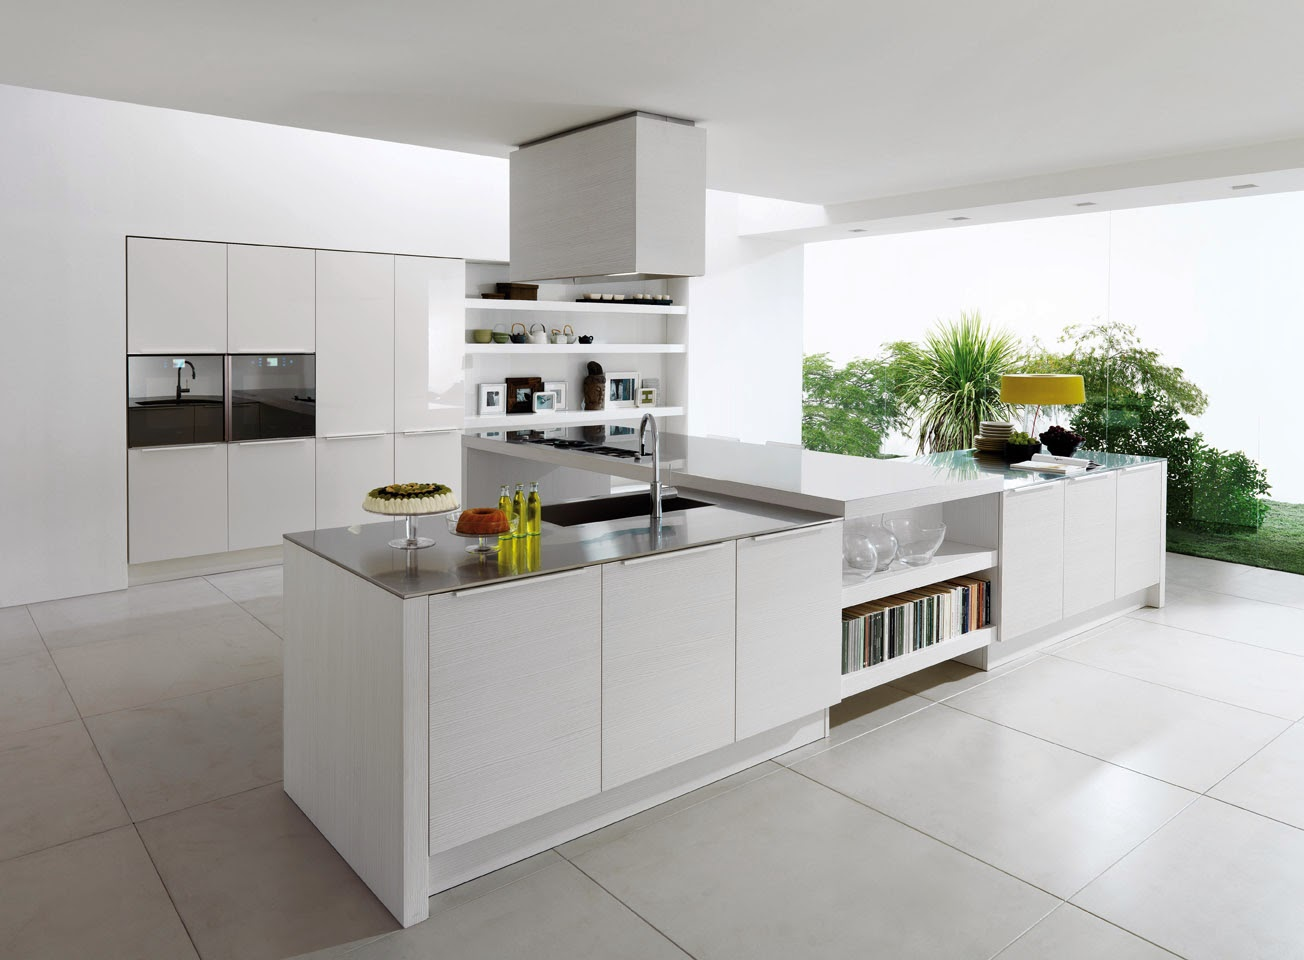 One Hundred Home: Simple Kitchen Concepts